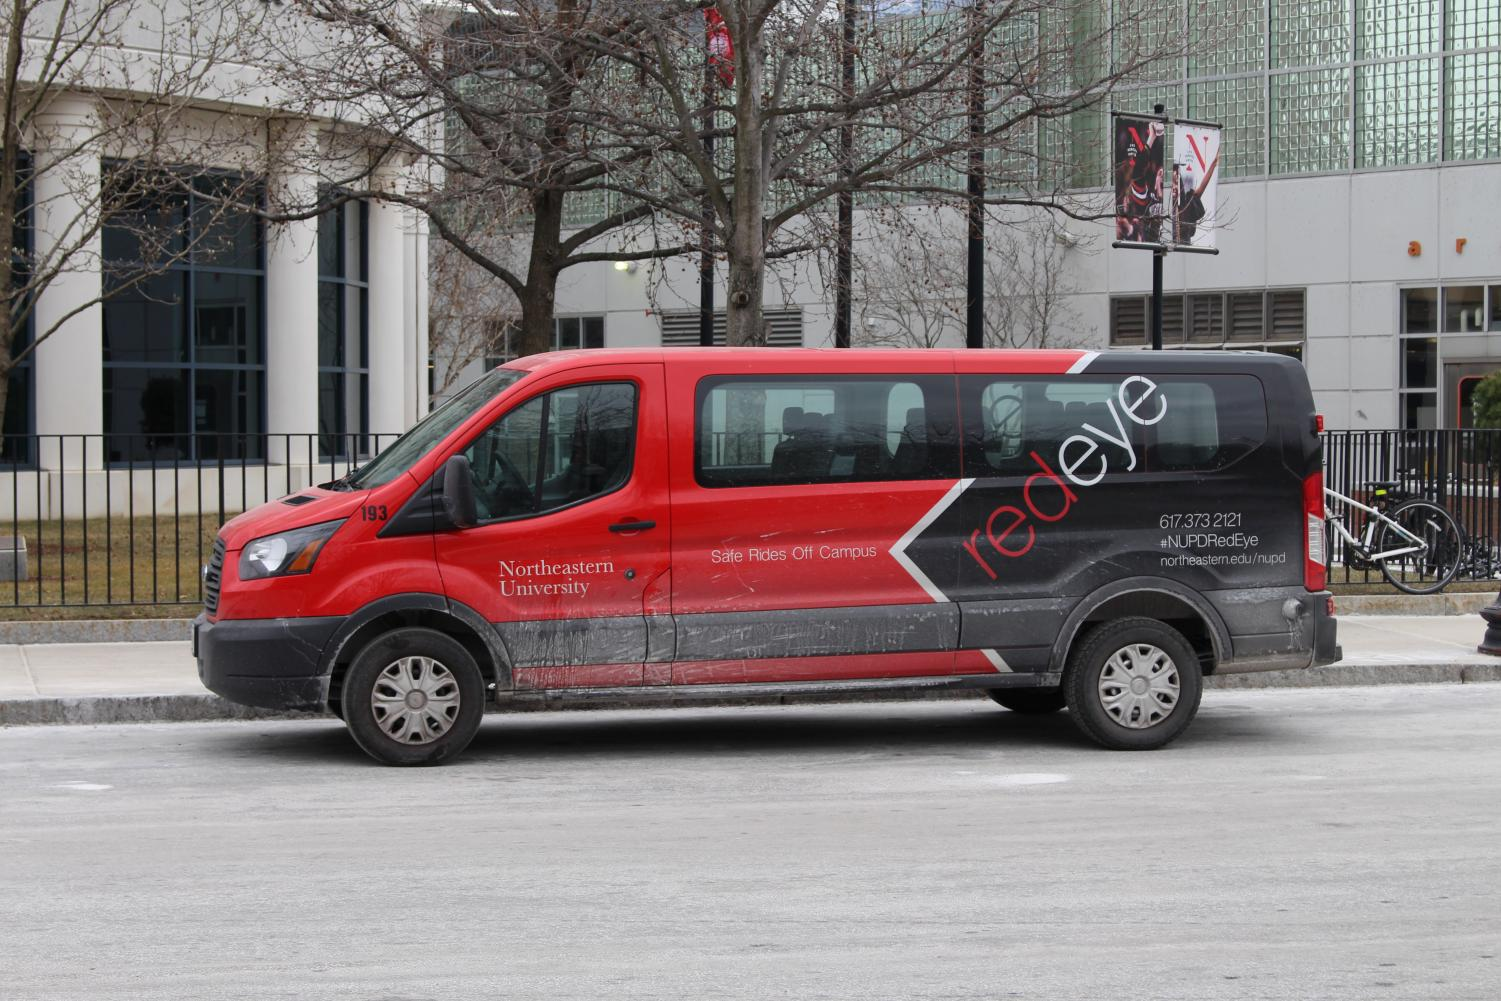 The NU Red Eye van sits in front of Raytheon Amphitheater and offers students safe rides off of campus.